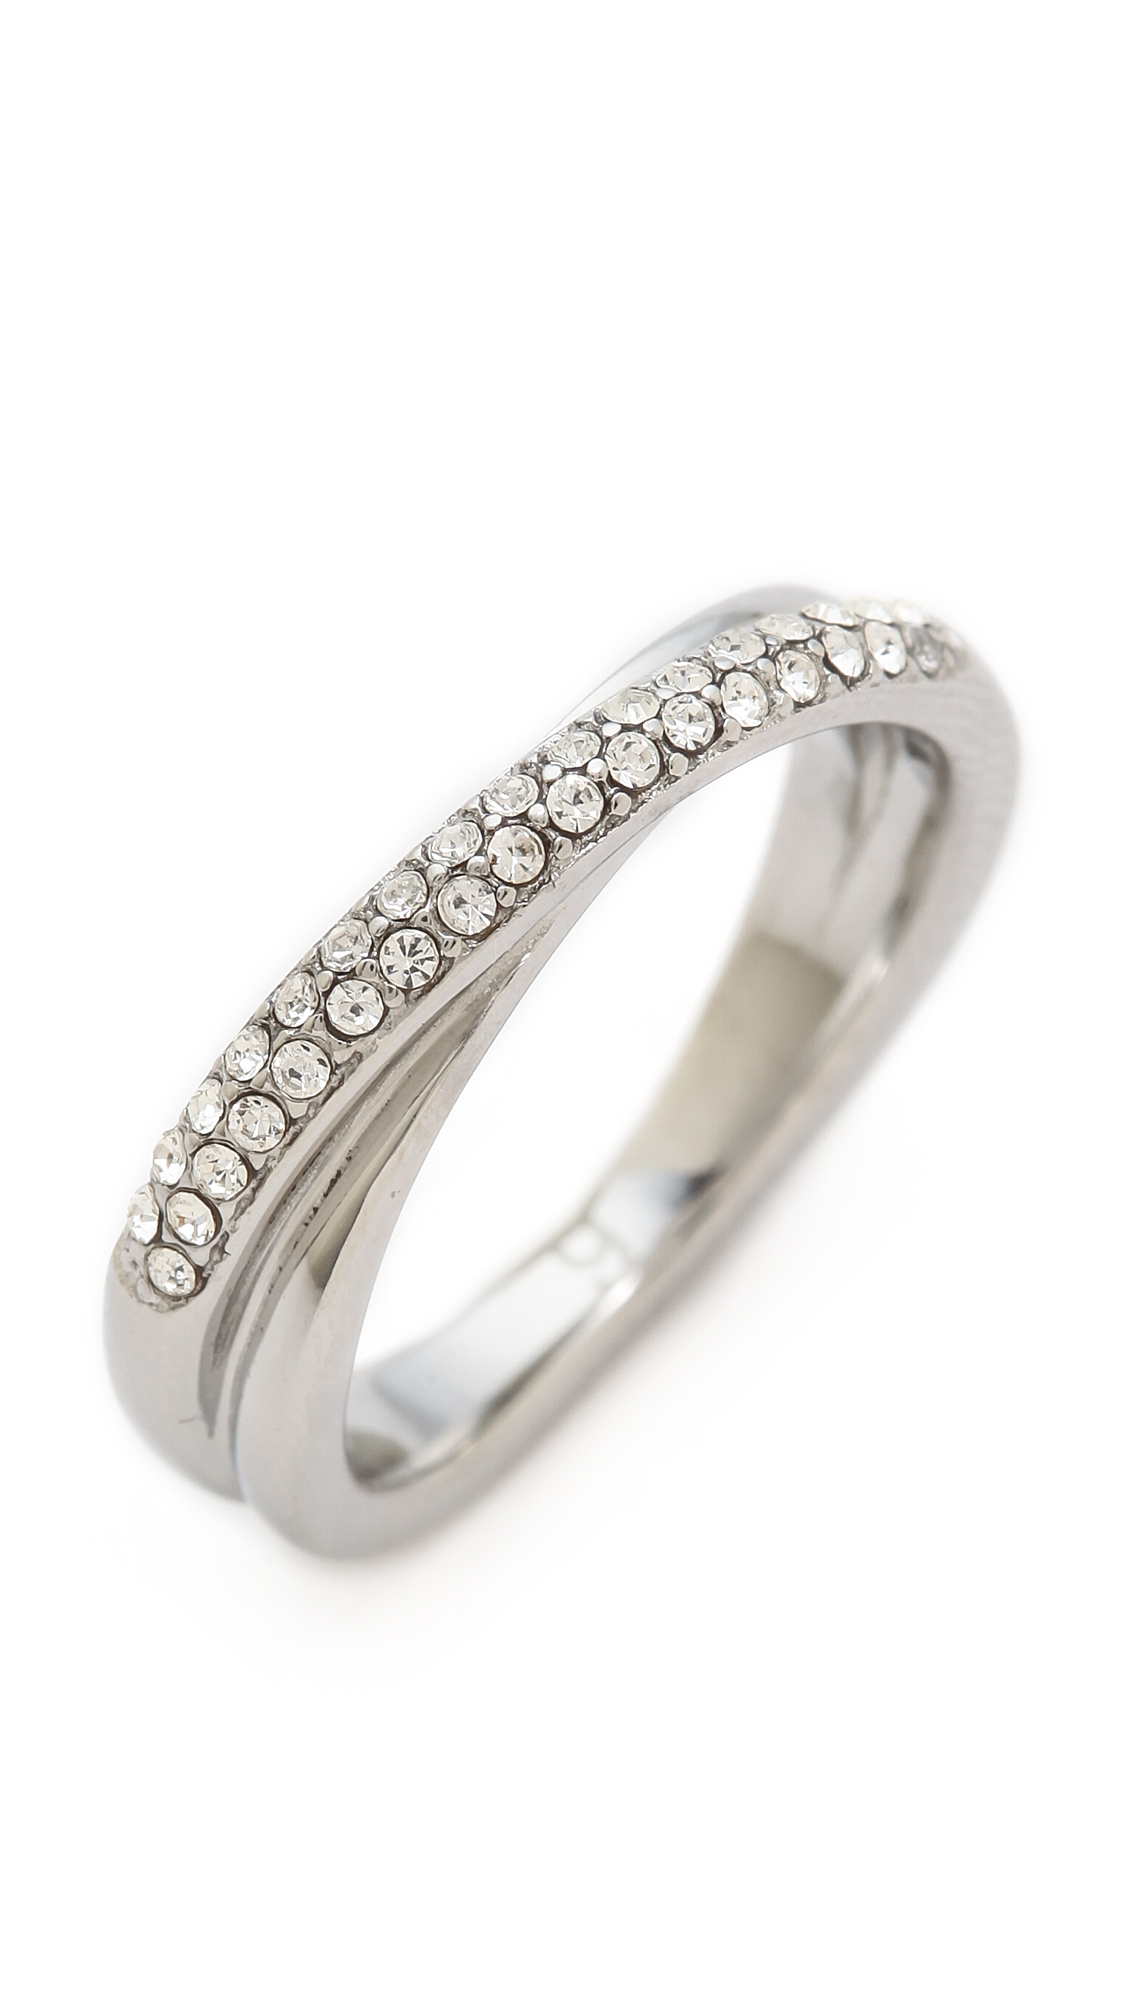 michael kors pave crossover ring silverclear in silver